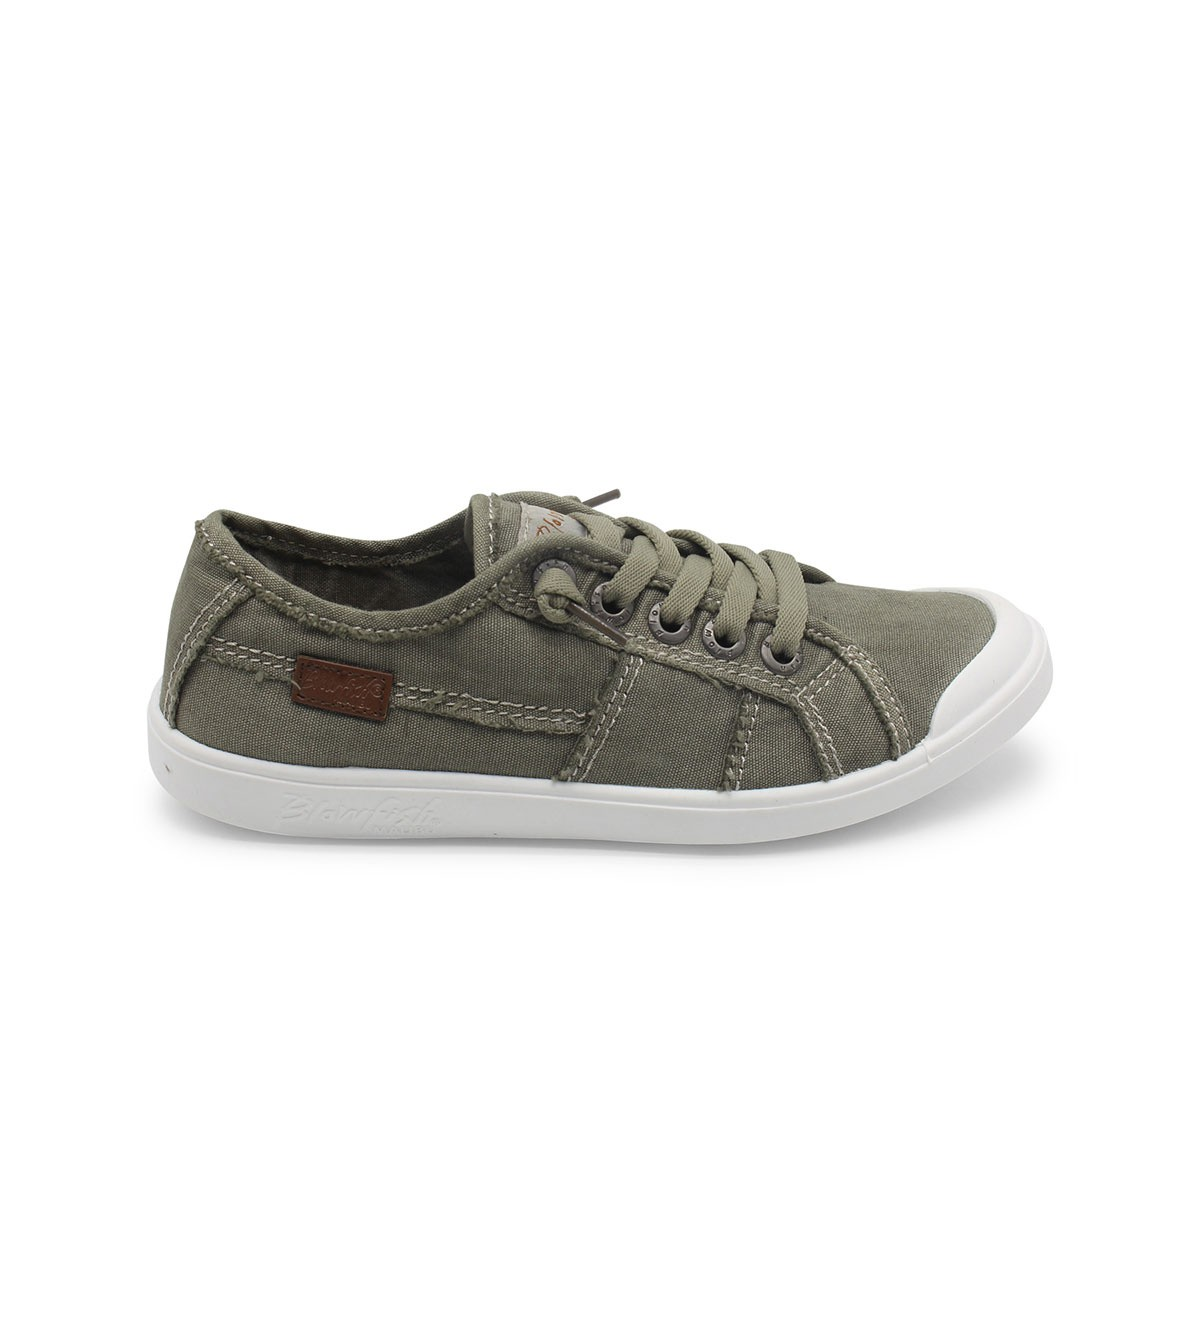 Afbeelding van BLOWFISH Malibu Blowfish vesper pastel grey groen